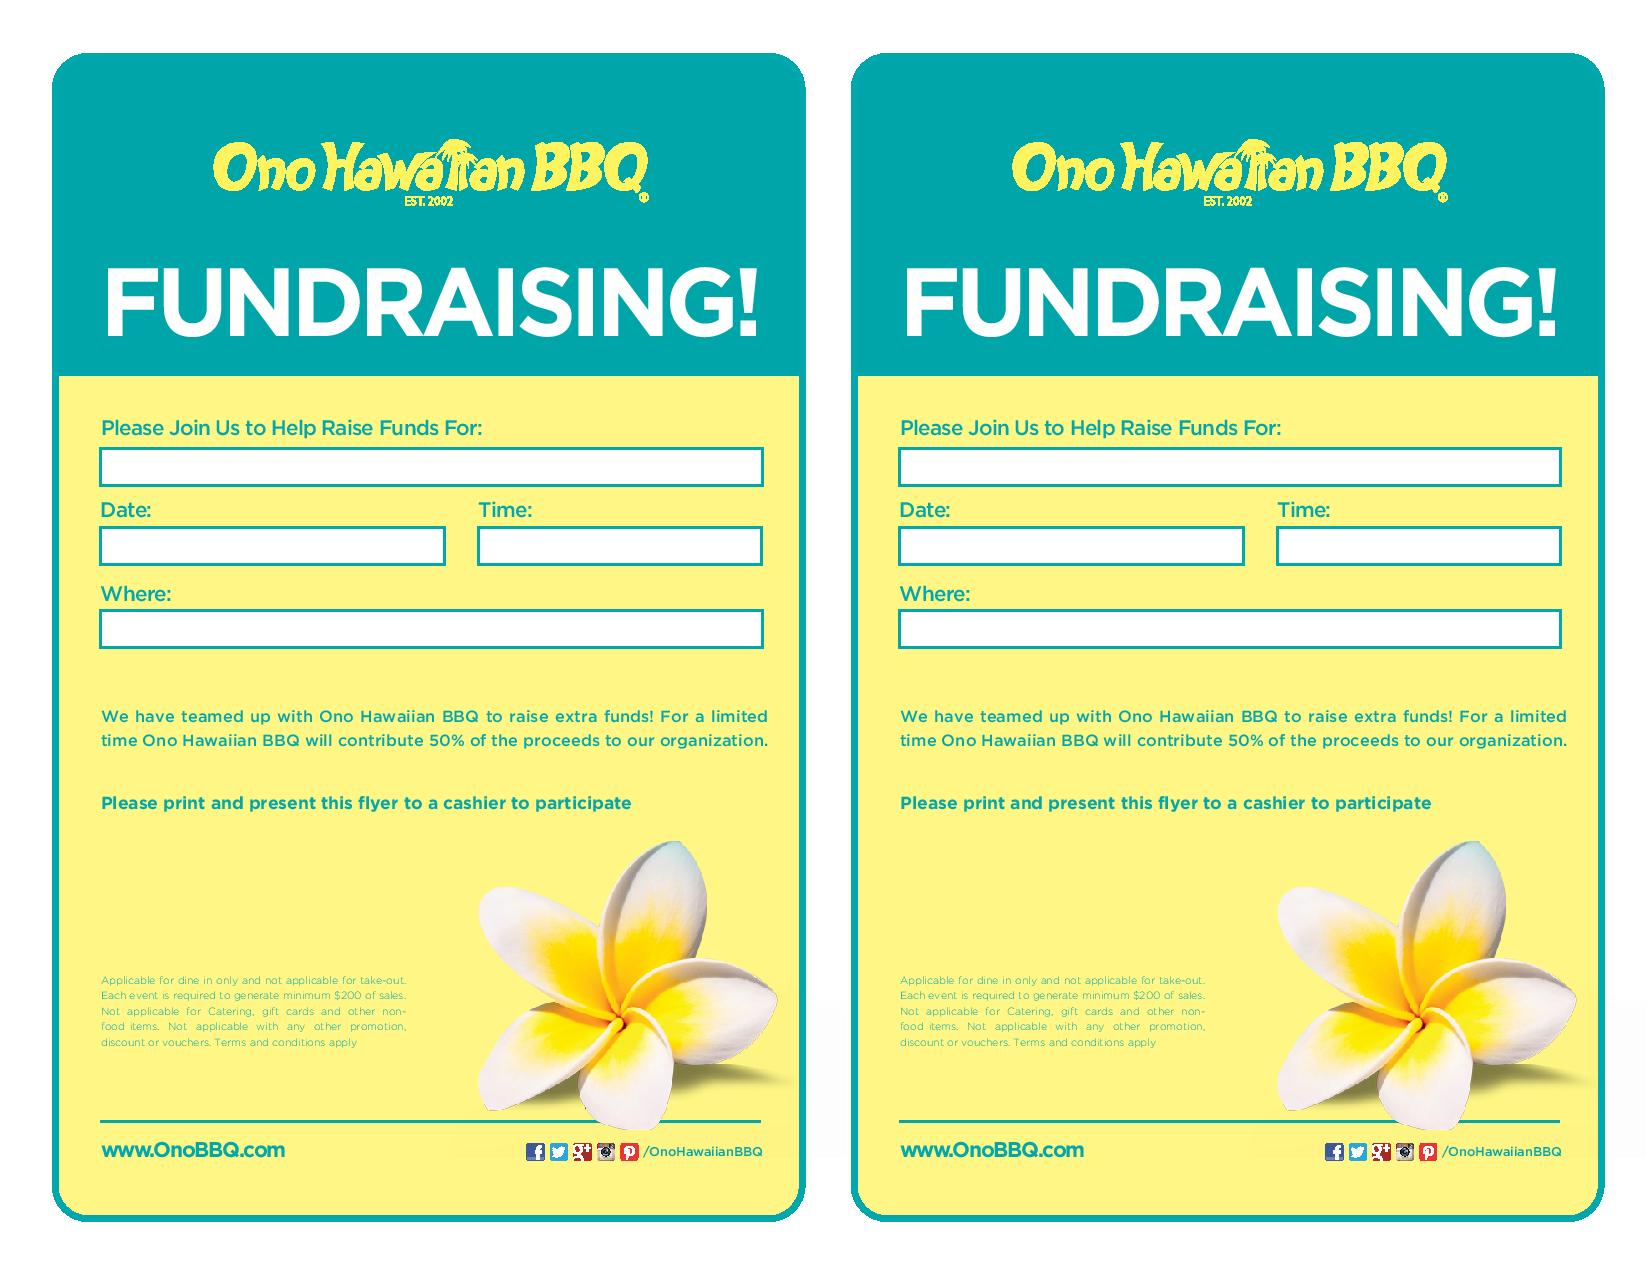 Buri Buri PTA Announces Art-In-Action Program Fundraiser September 12th at Ono Hawaiian BBQ